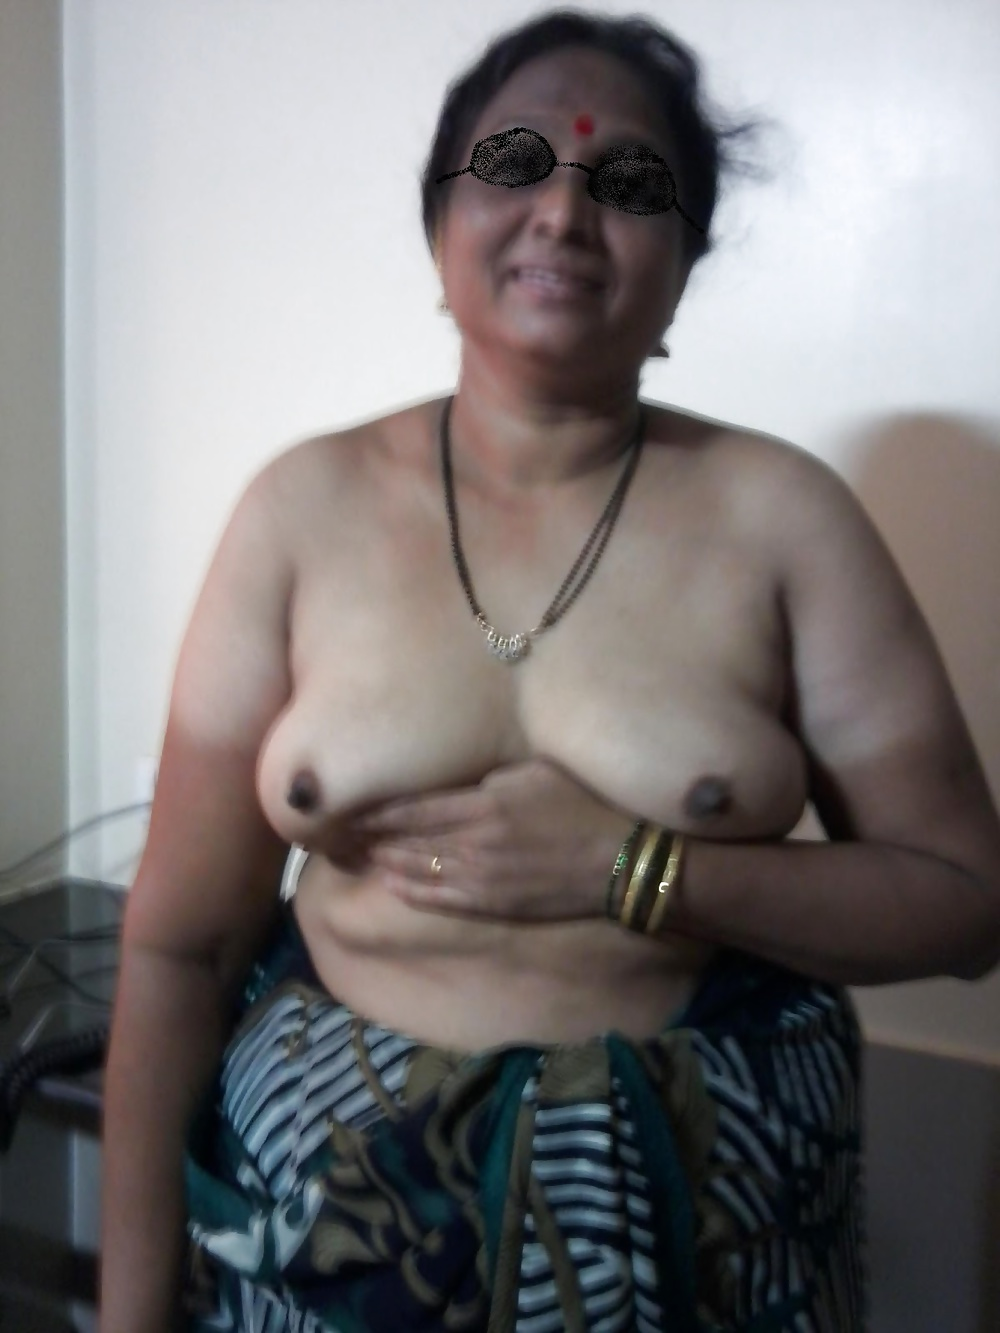 Apologise, but sex aunty mulai remarkable, valuable